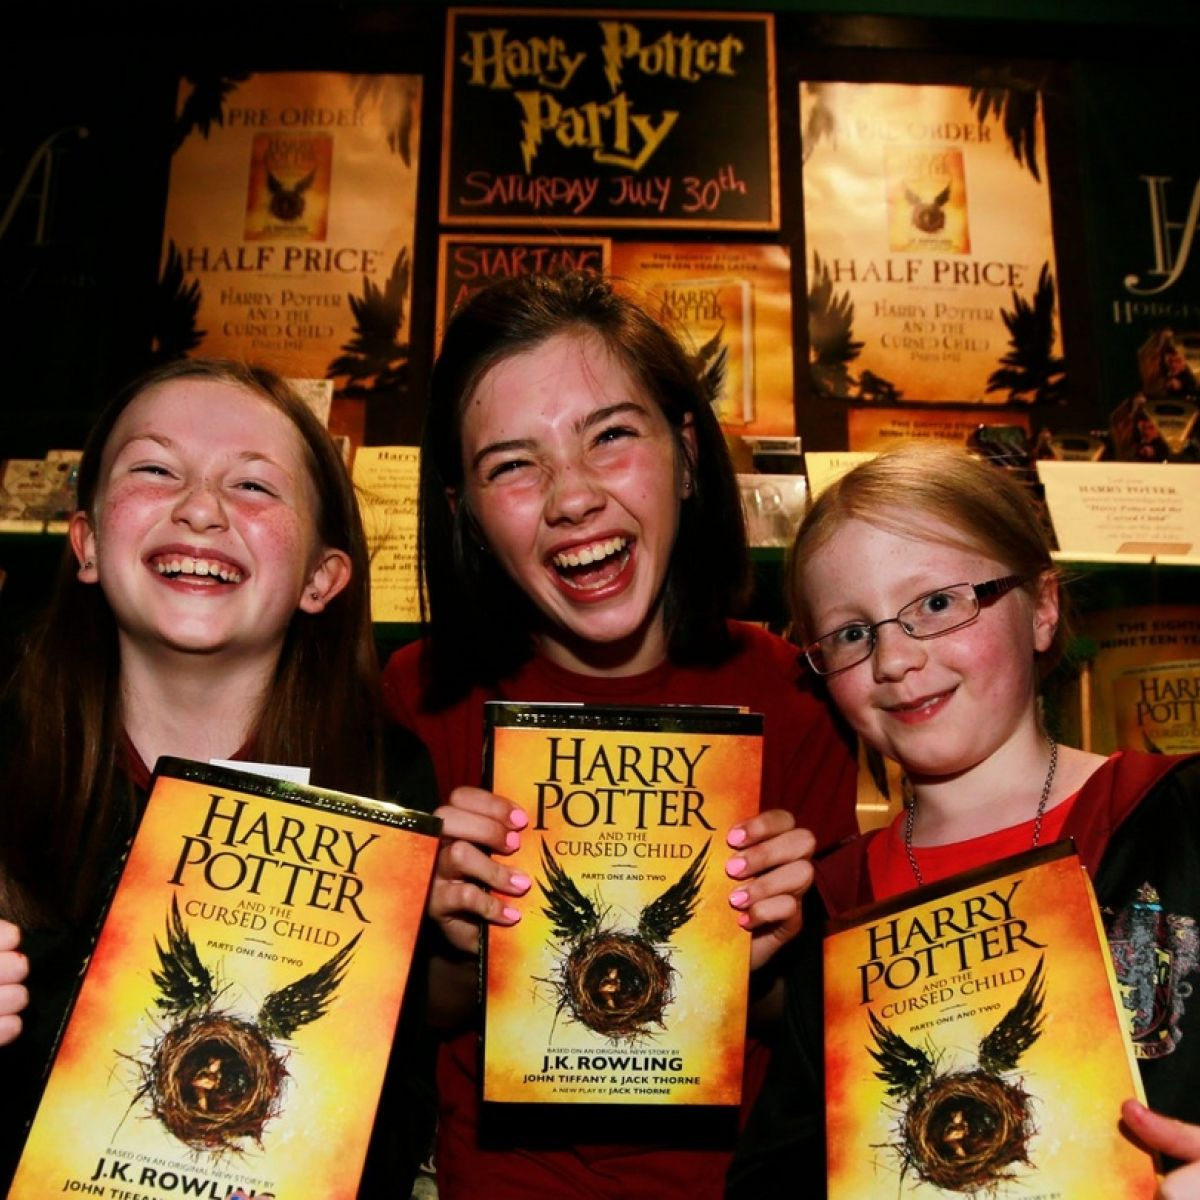 Harry Potter and the Cursed Child review: missing the